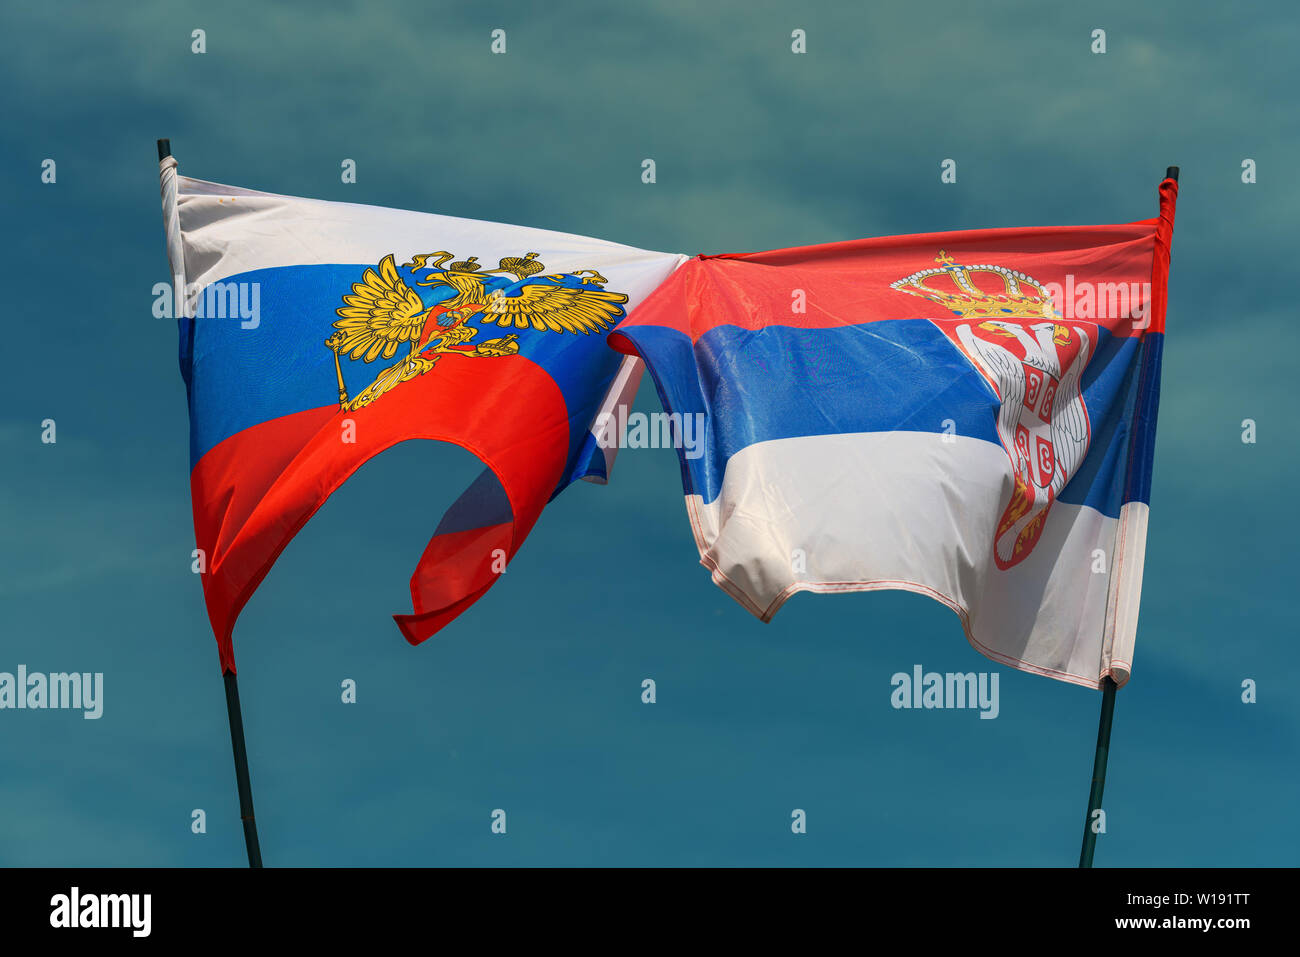 Russian Serbian Stock Photos & Russian Serbian Stock Images - Alamy